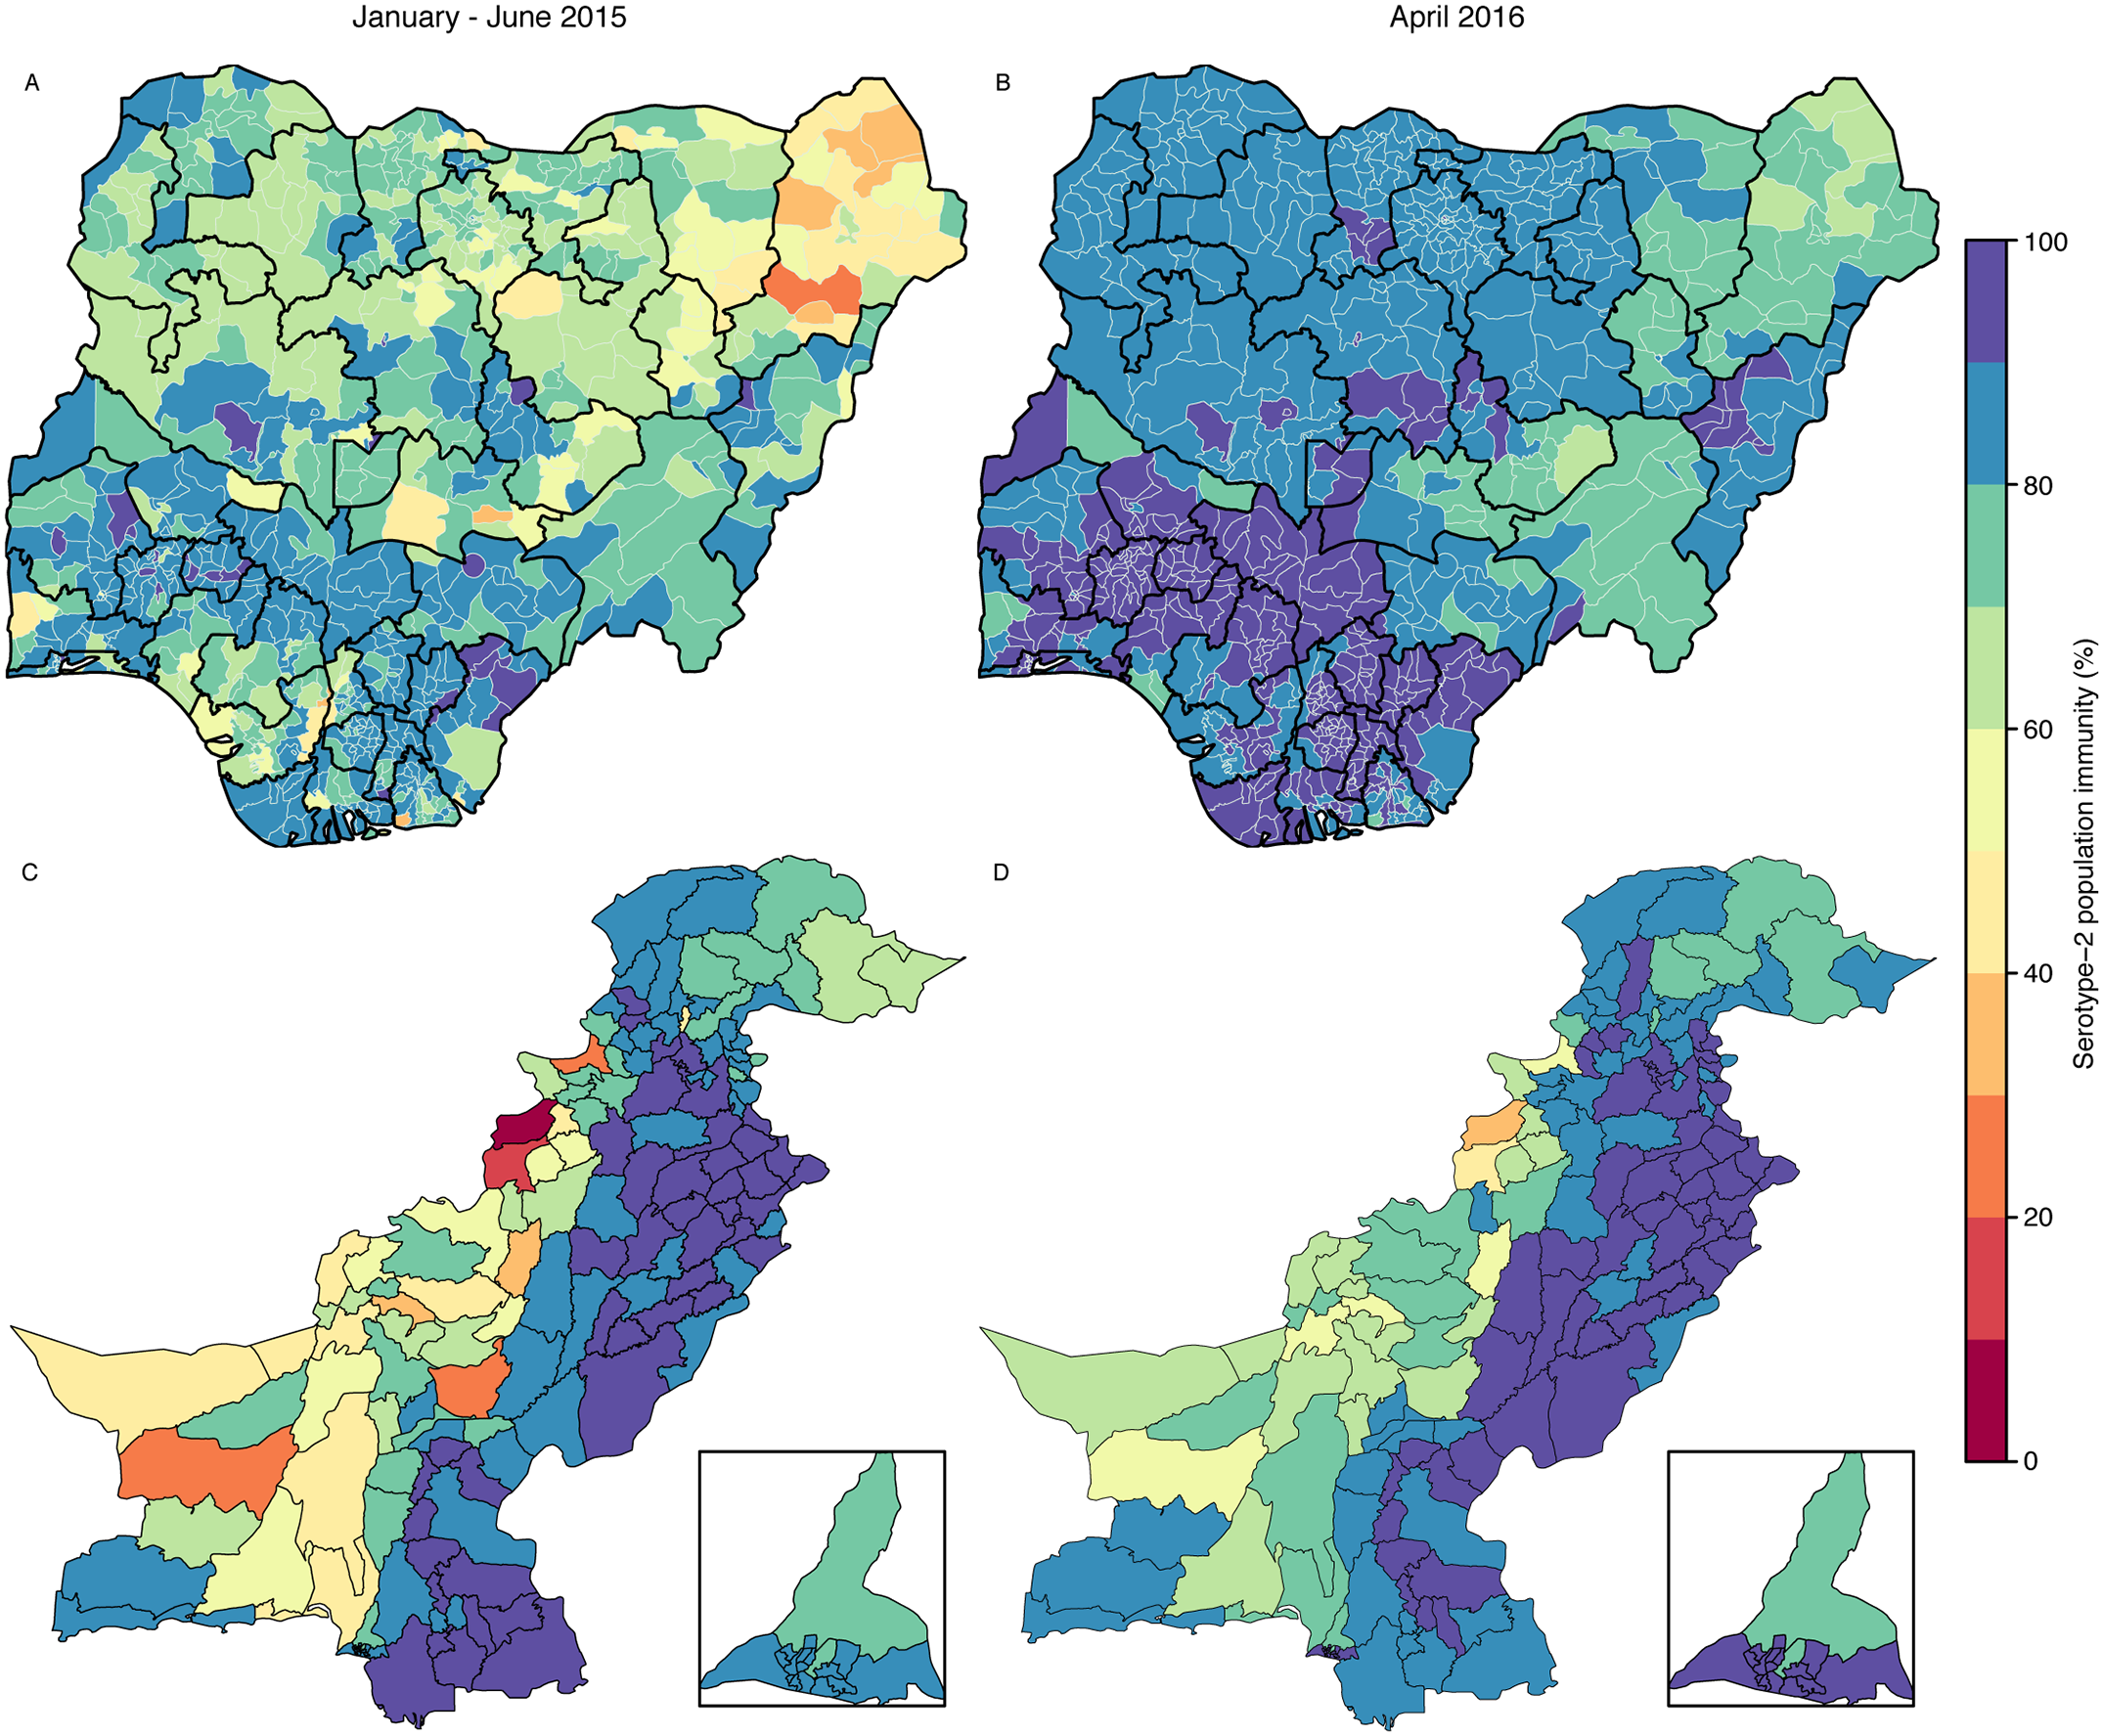 Estimated serotype-2 population immunity in January–June 2015 and projected serotype-2 population immunity in April 2016 in Nigeria and Pakistan.